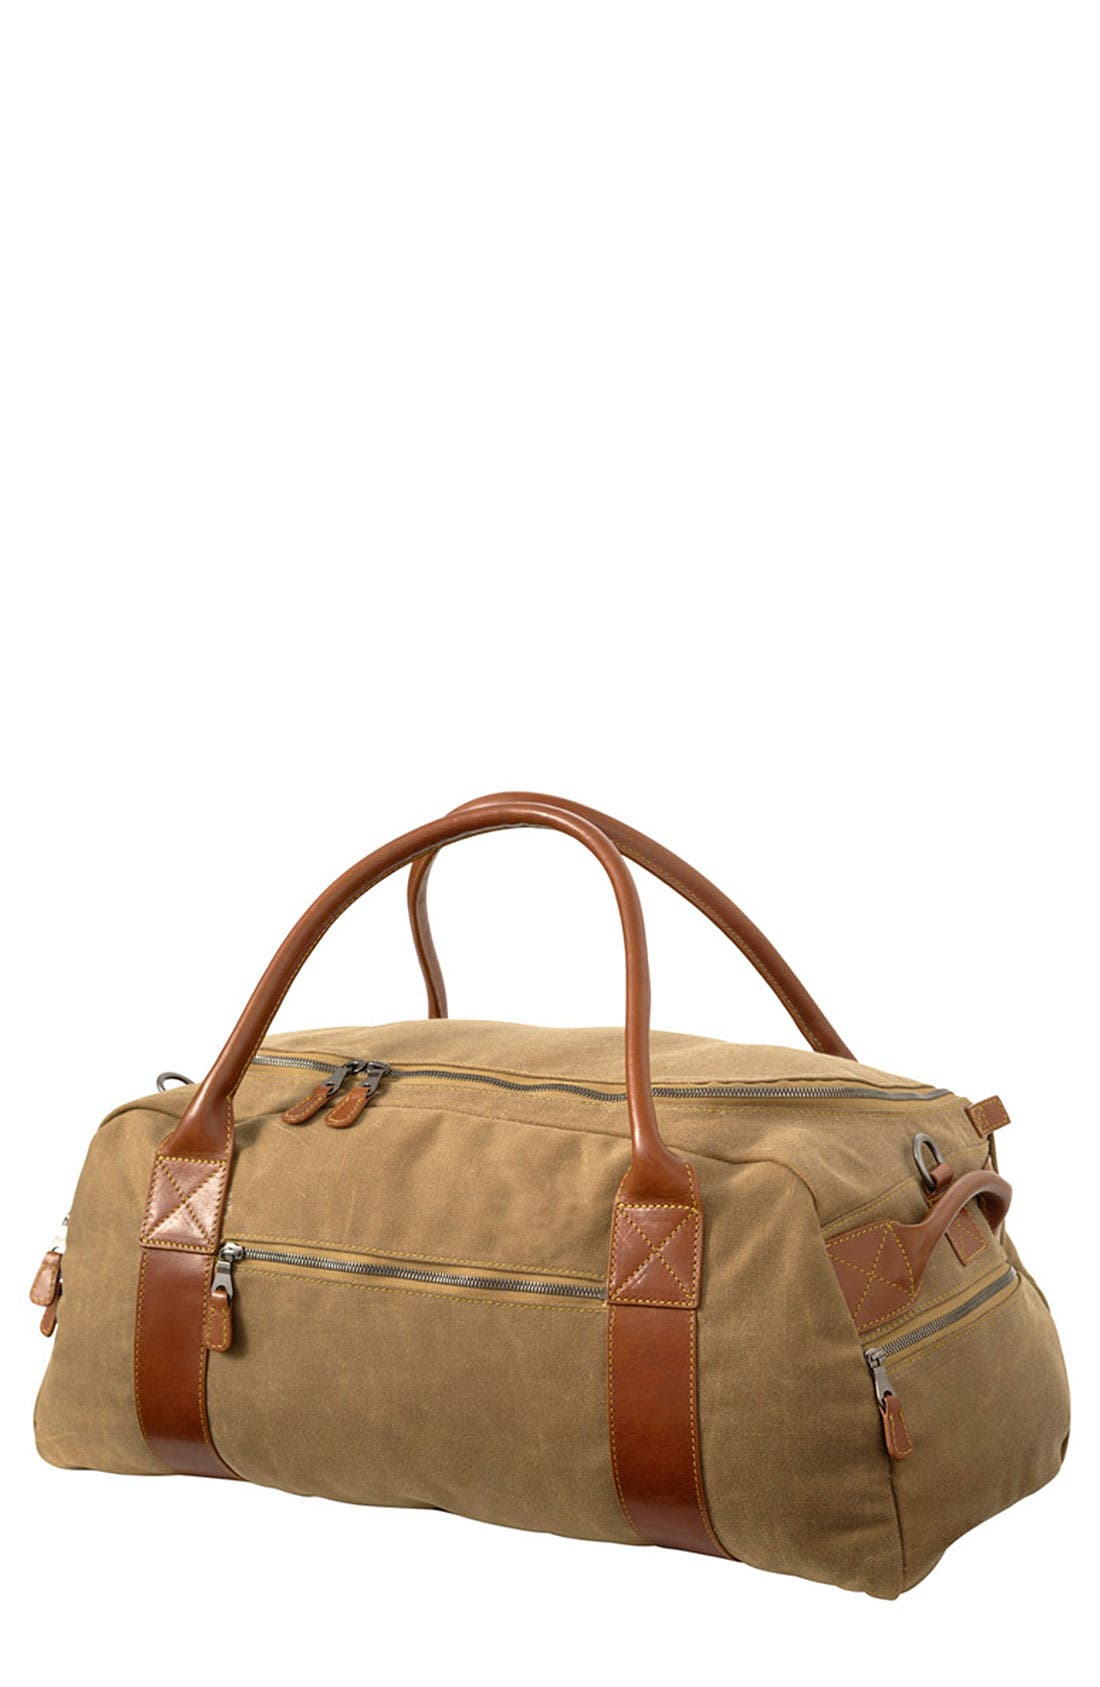 Alternate Image 1 Selected - Mulholland 'Oval' Waxed Canvas Duffel Bag